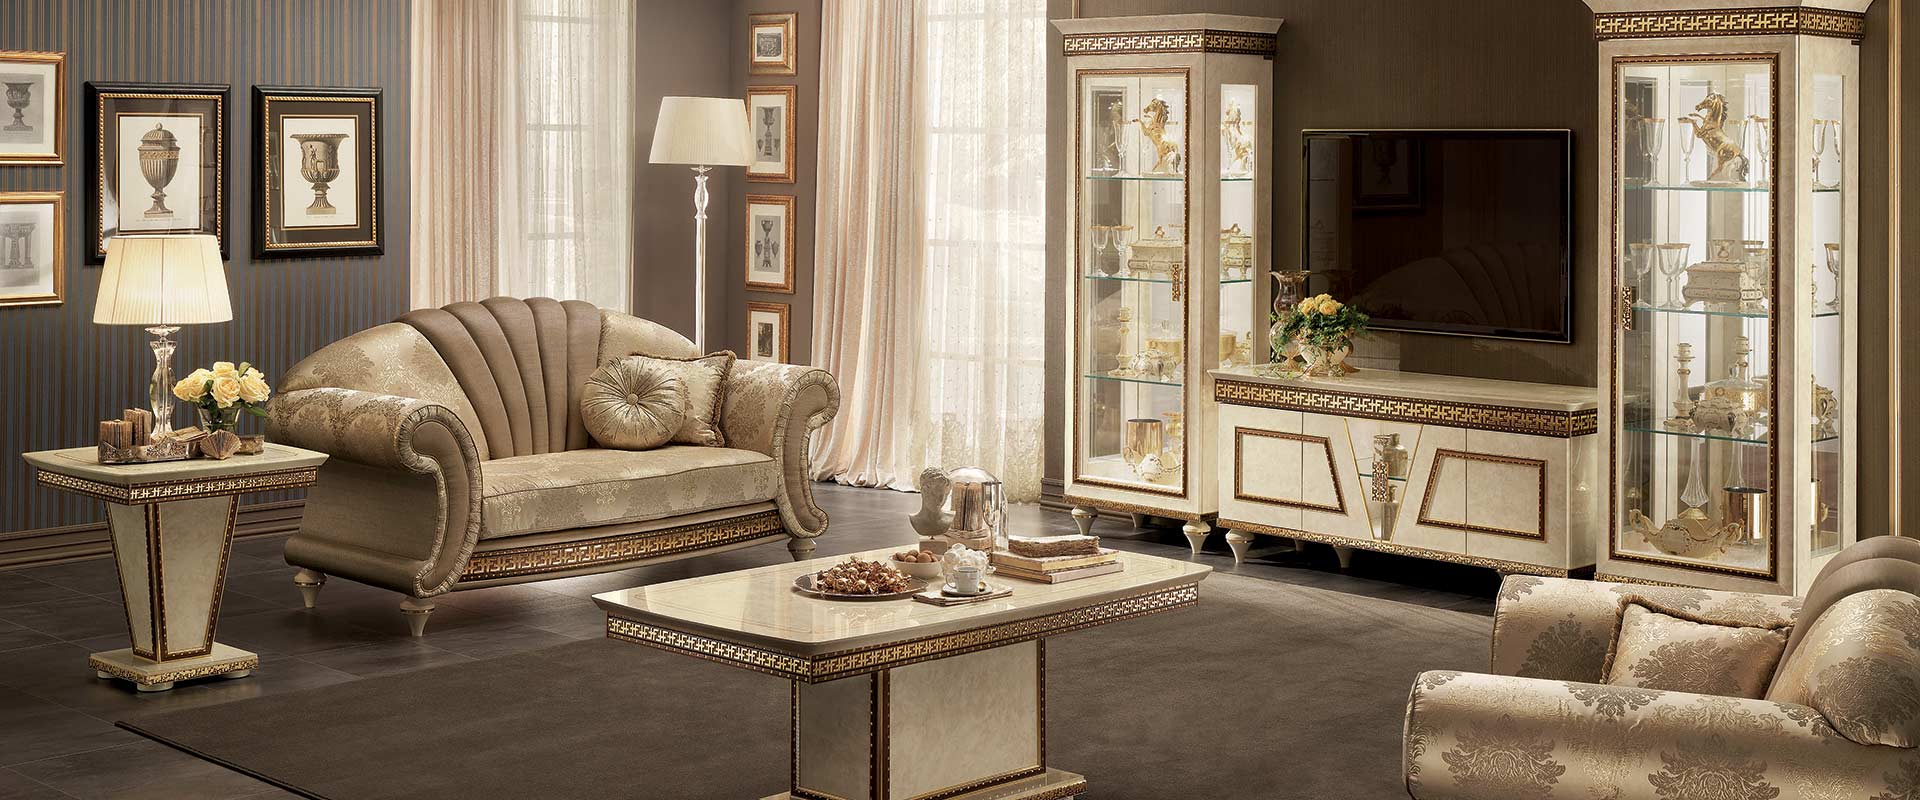 Arredoclassic-italian-classic-furniture-for-your-home